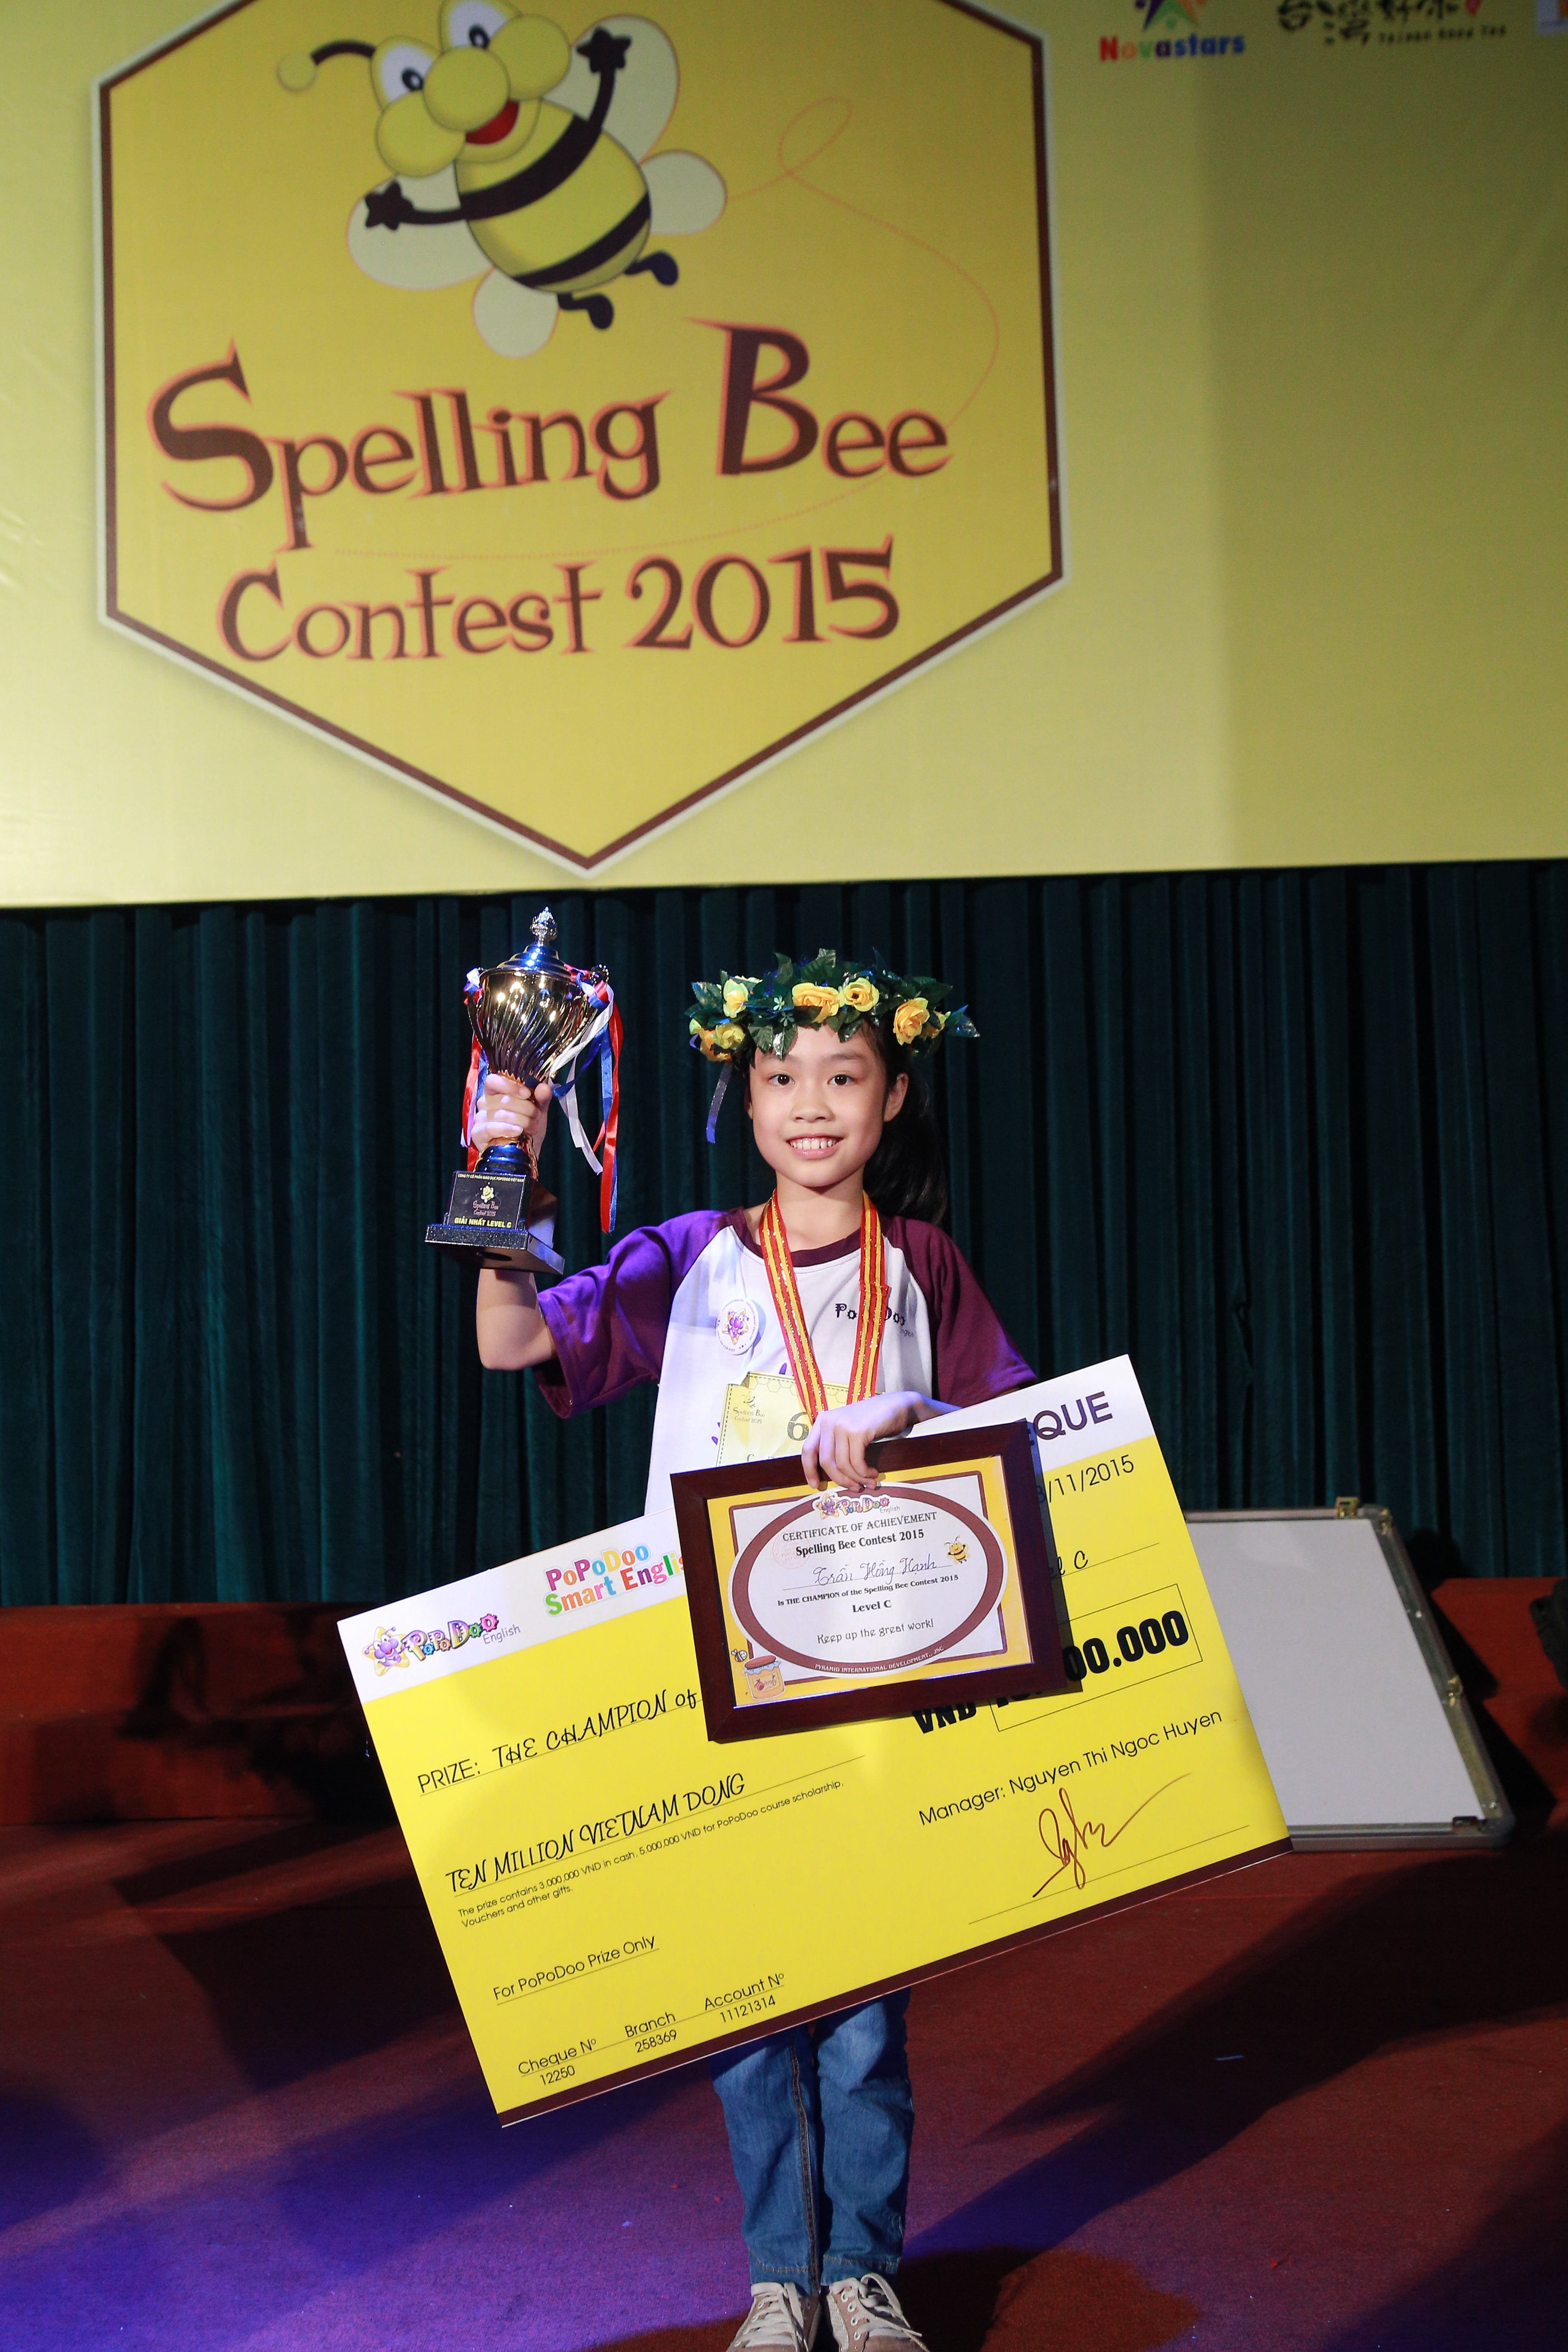 Throwback our Spelling Bee Contest 2015 Champions - Level C